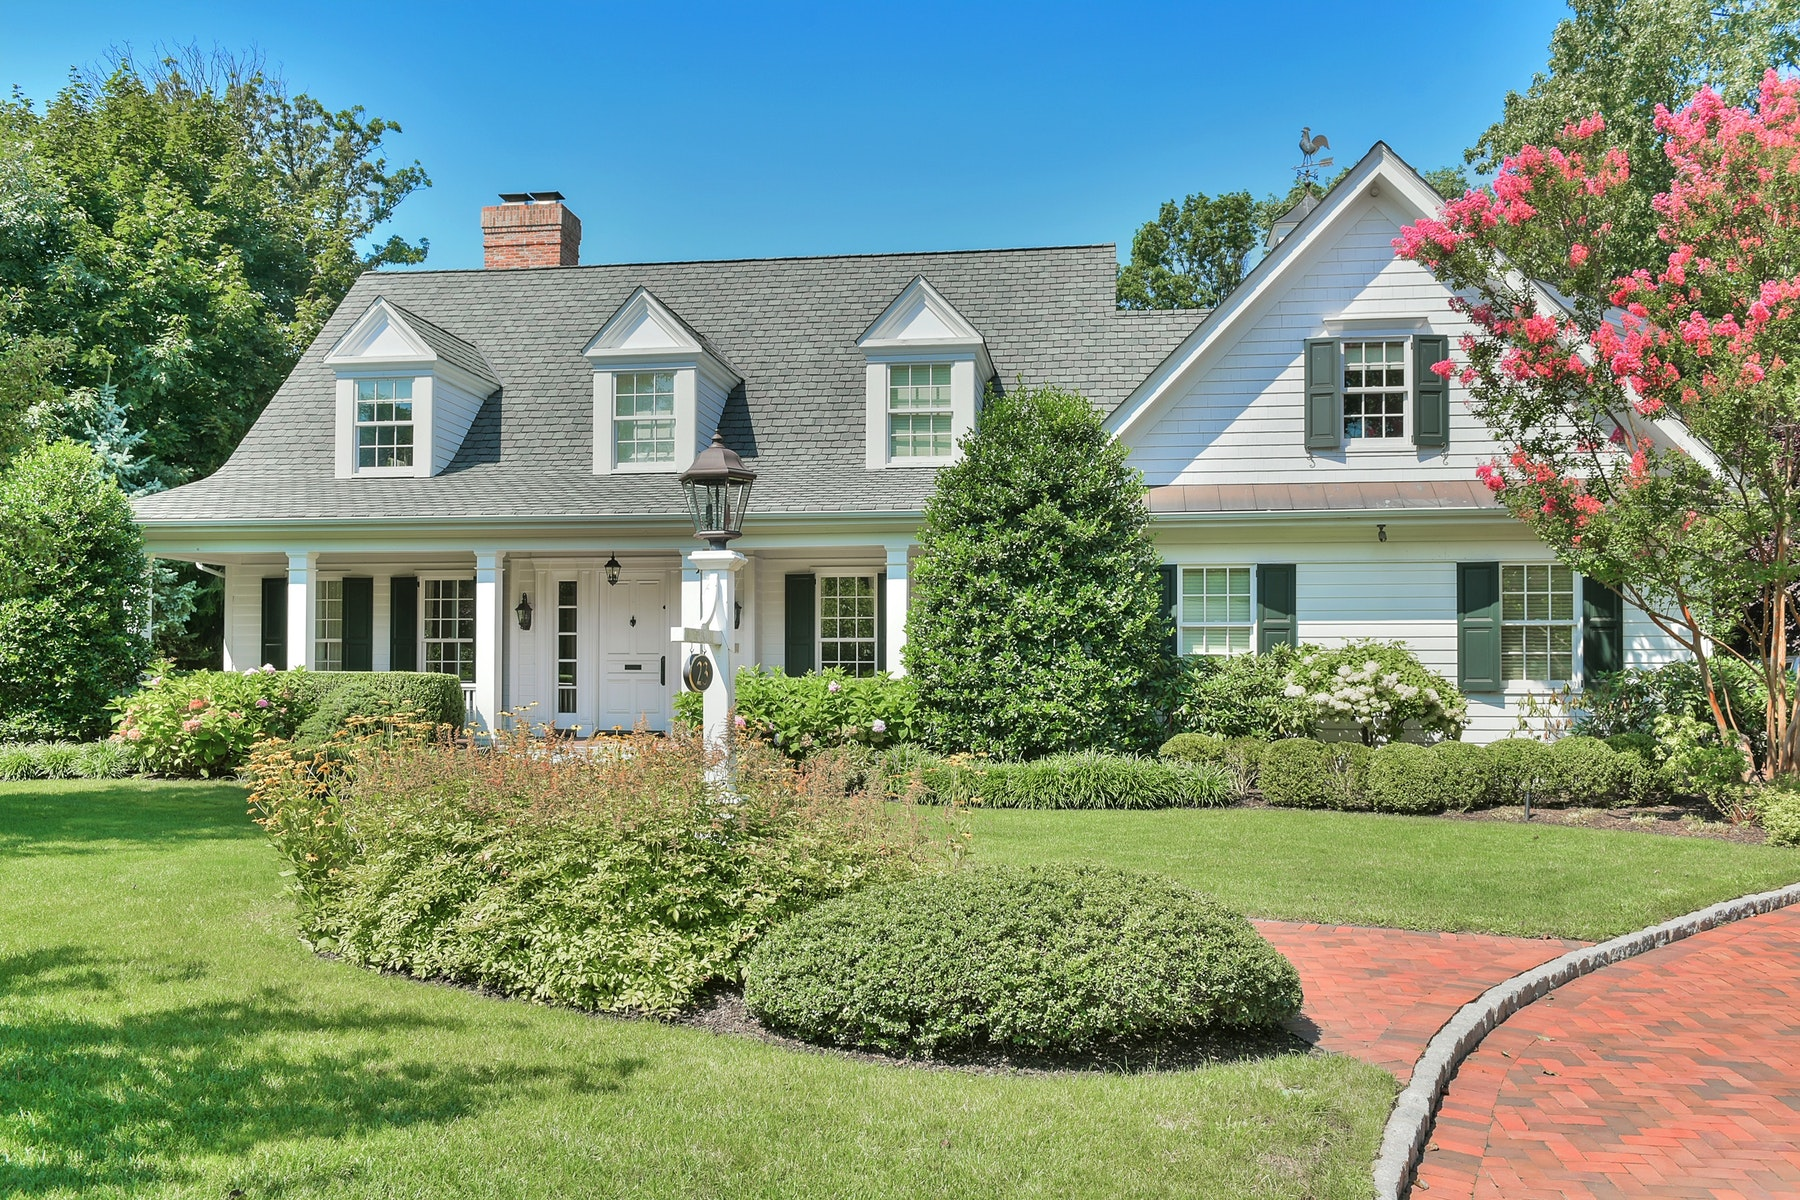 Single Family Home for Sale at Imagine the Extraordinary! 23 Heller Drive, Montclair, New Jersey 07043 United States